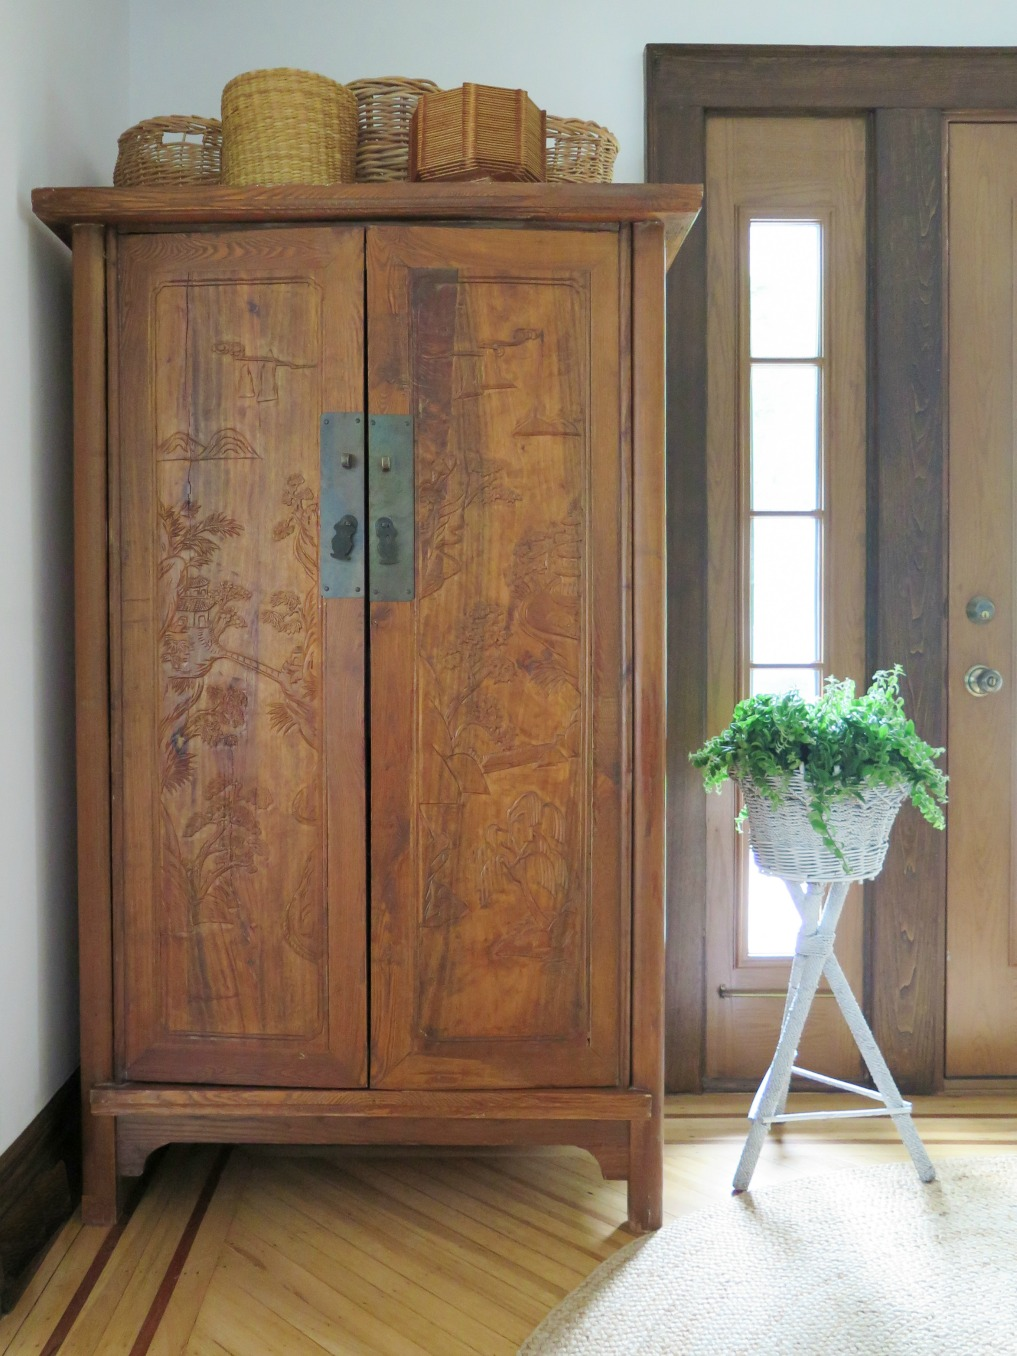 Asian armoire piled with baskets